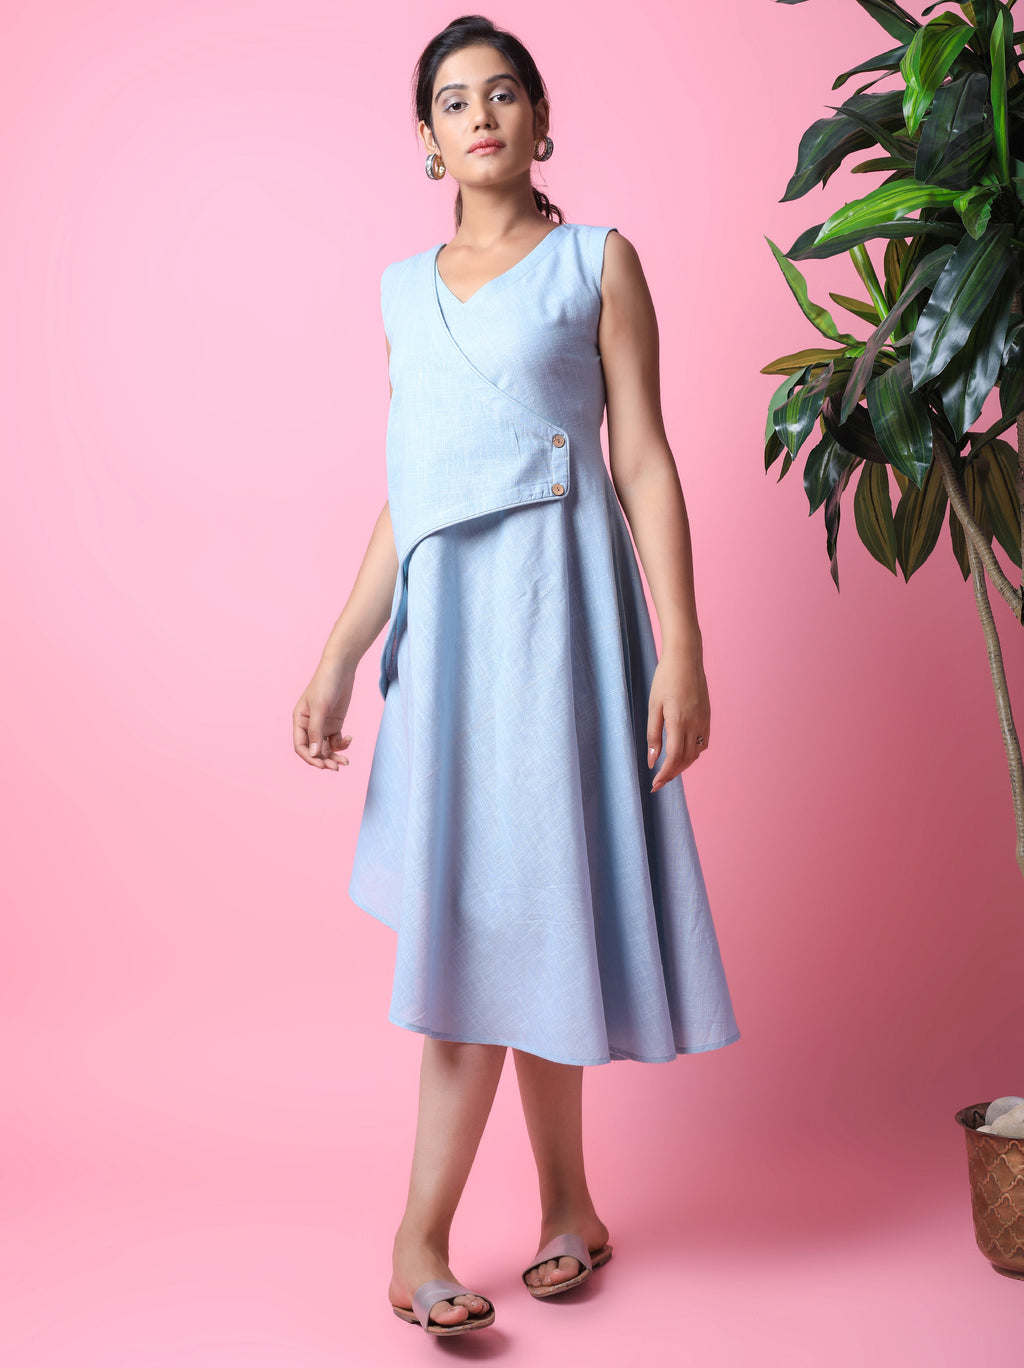 Pastel Blue Knee Length Dress